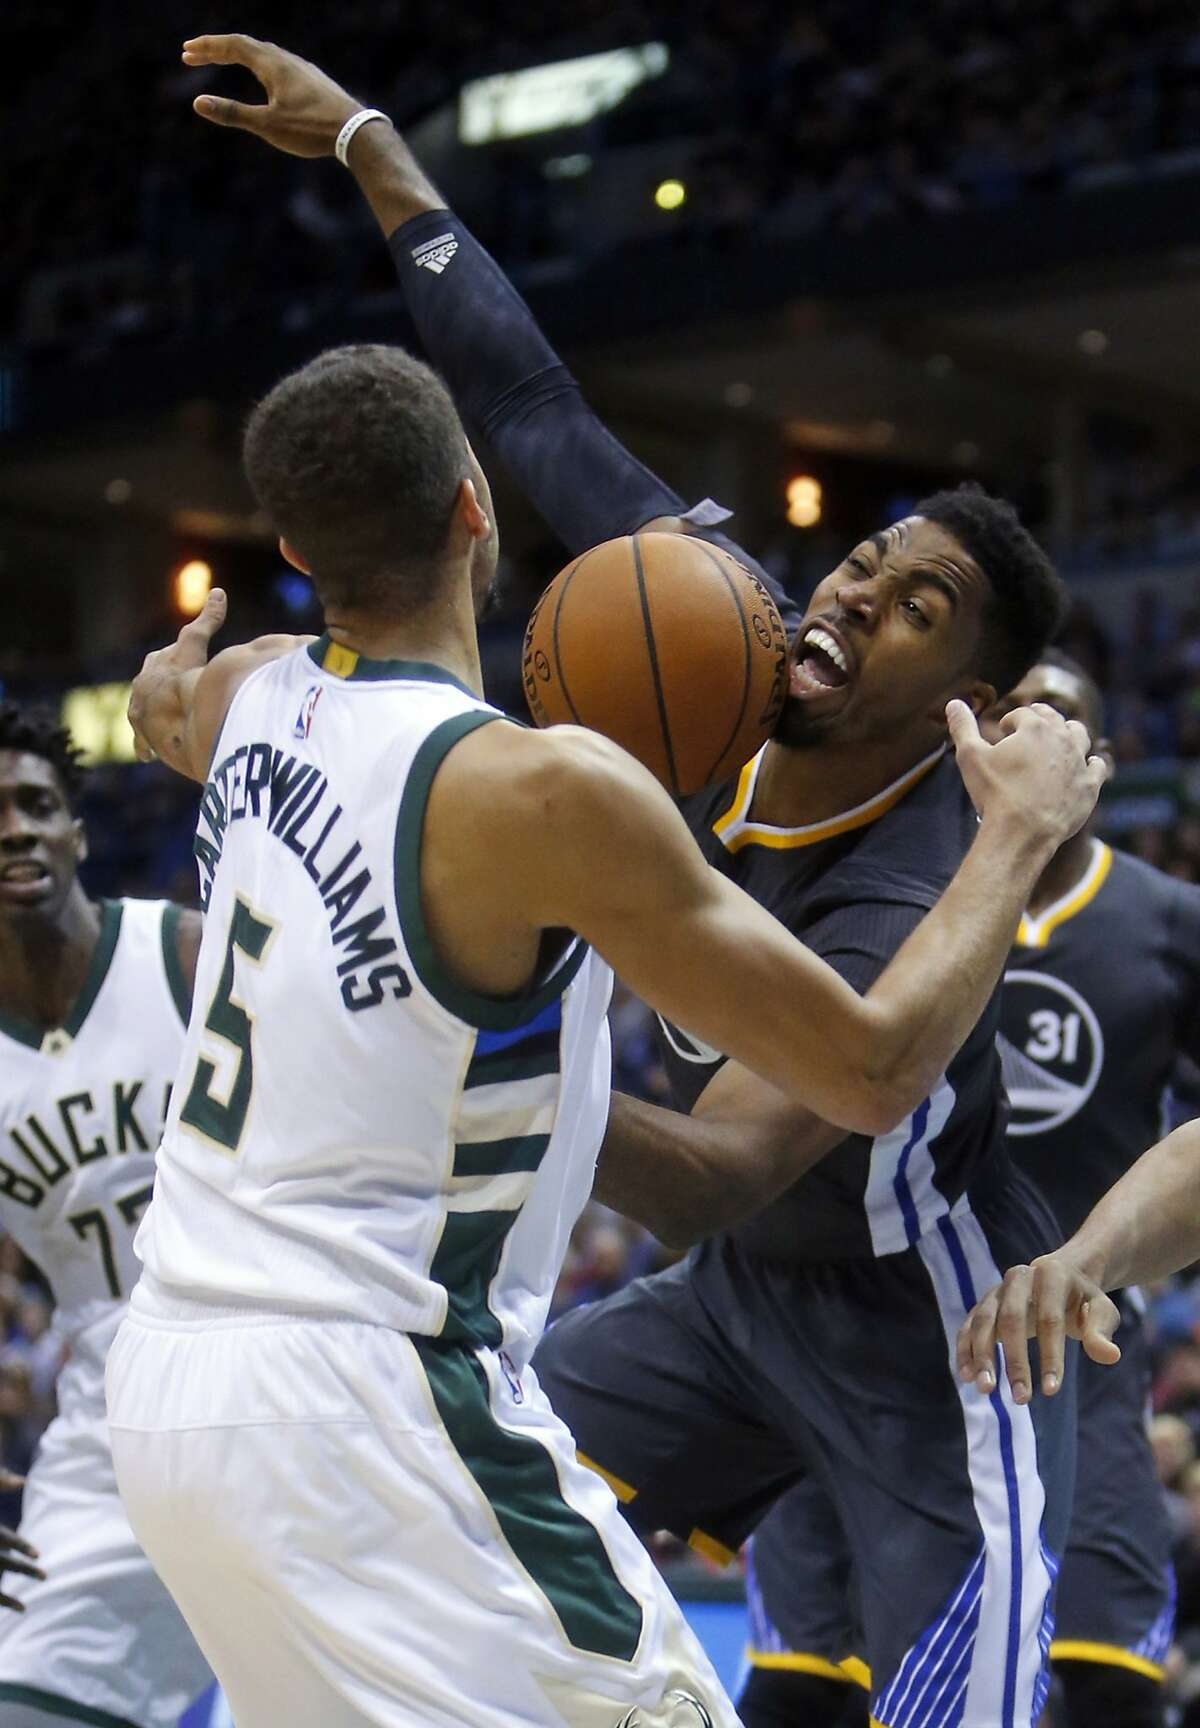 Golden State Warriors' Jason Thompson loses control of the ball against Milwaukee Bucks' Michael Carter-Williams during Milwaukee's 108-95 win in NBA game at BMO Harris Bradley Center in Milwaukee, WI on Saturday, December 12, 2015.